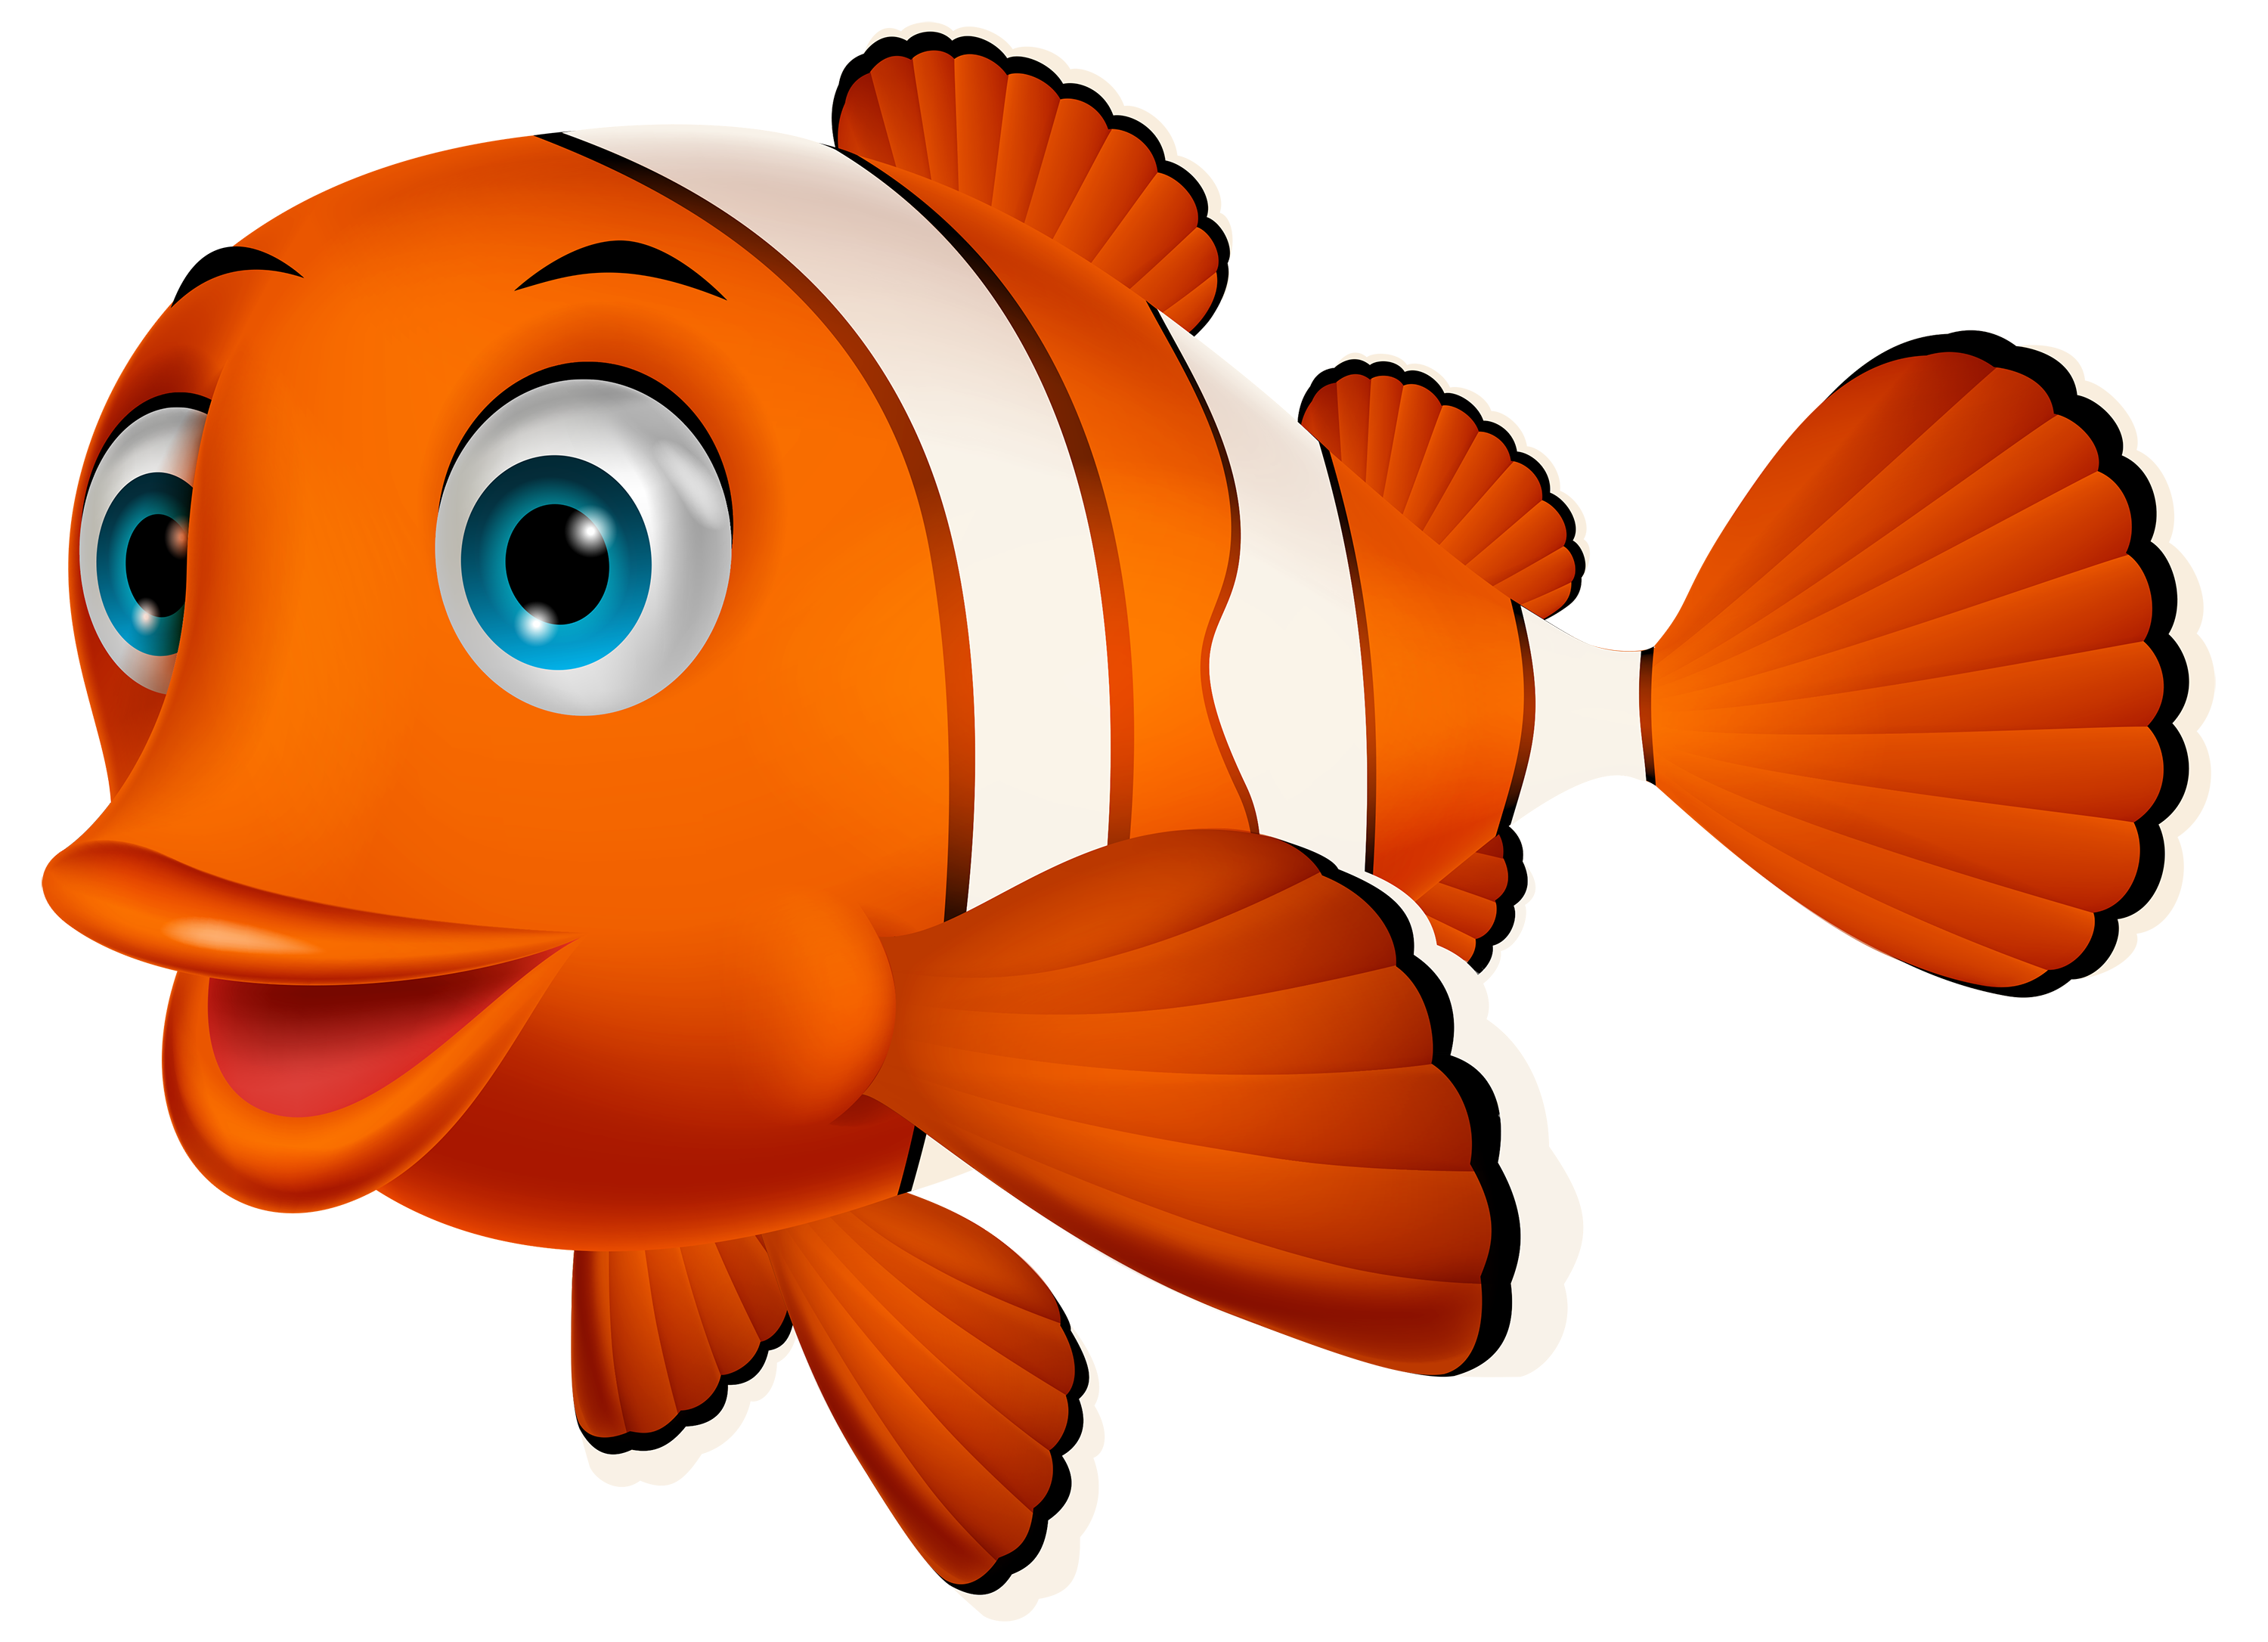 Fish balloon clipart svg free download Interesting Fish Images Free Clip Art Jumping Bass Clipart Panda #20358 svg free download